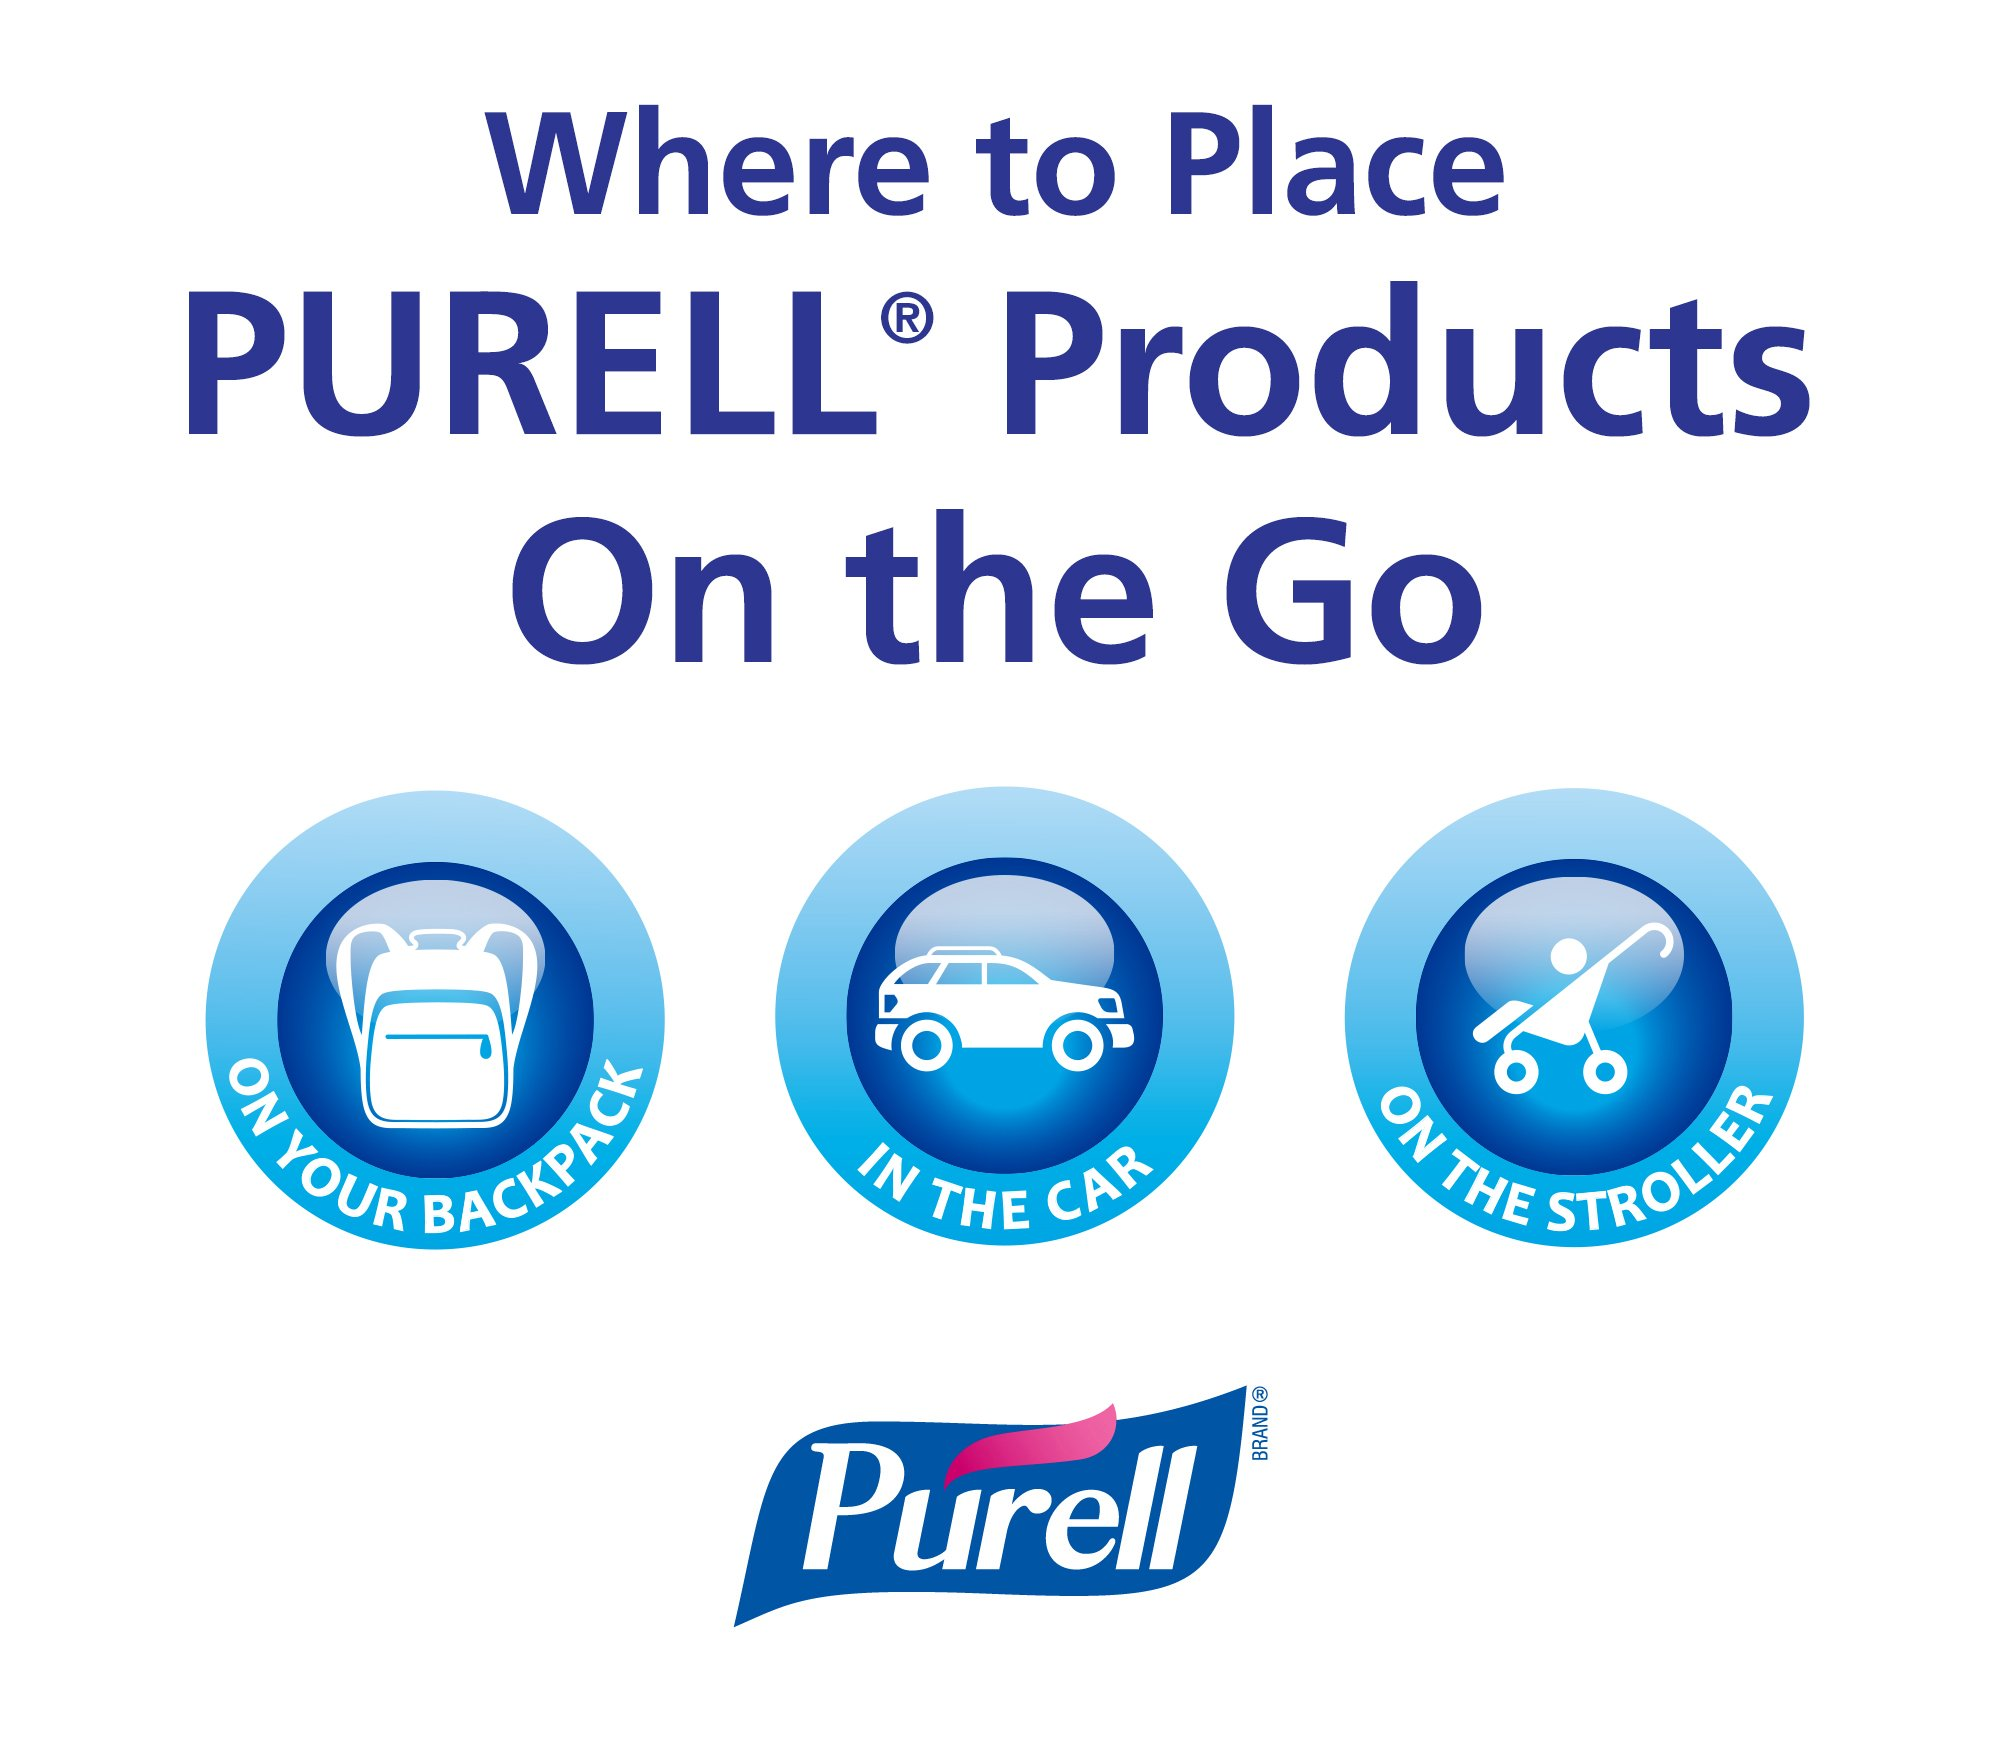 PURELL Advanced Hand Sanitizer Singles - Travel Size Single Use Individual Portable Packets, 125 count Self Dispensing Packets in a Display Box - 9620-12-125EC by Purell (Image #6)